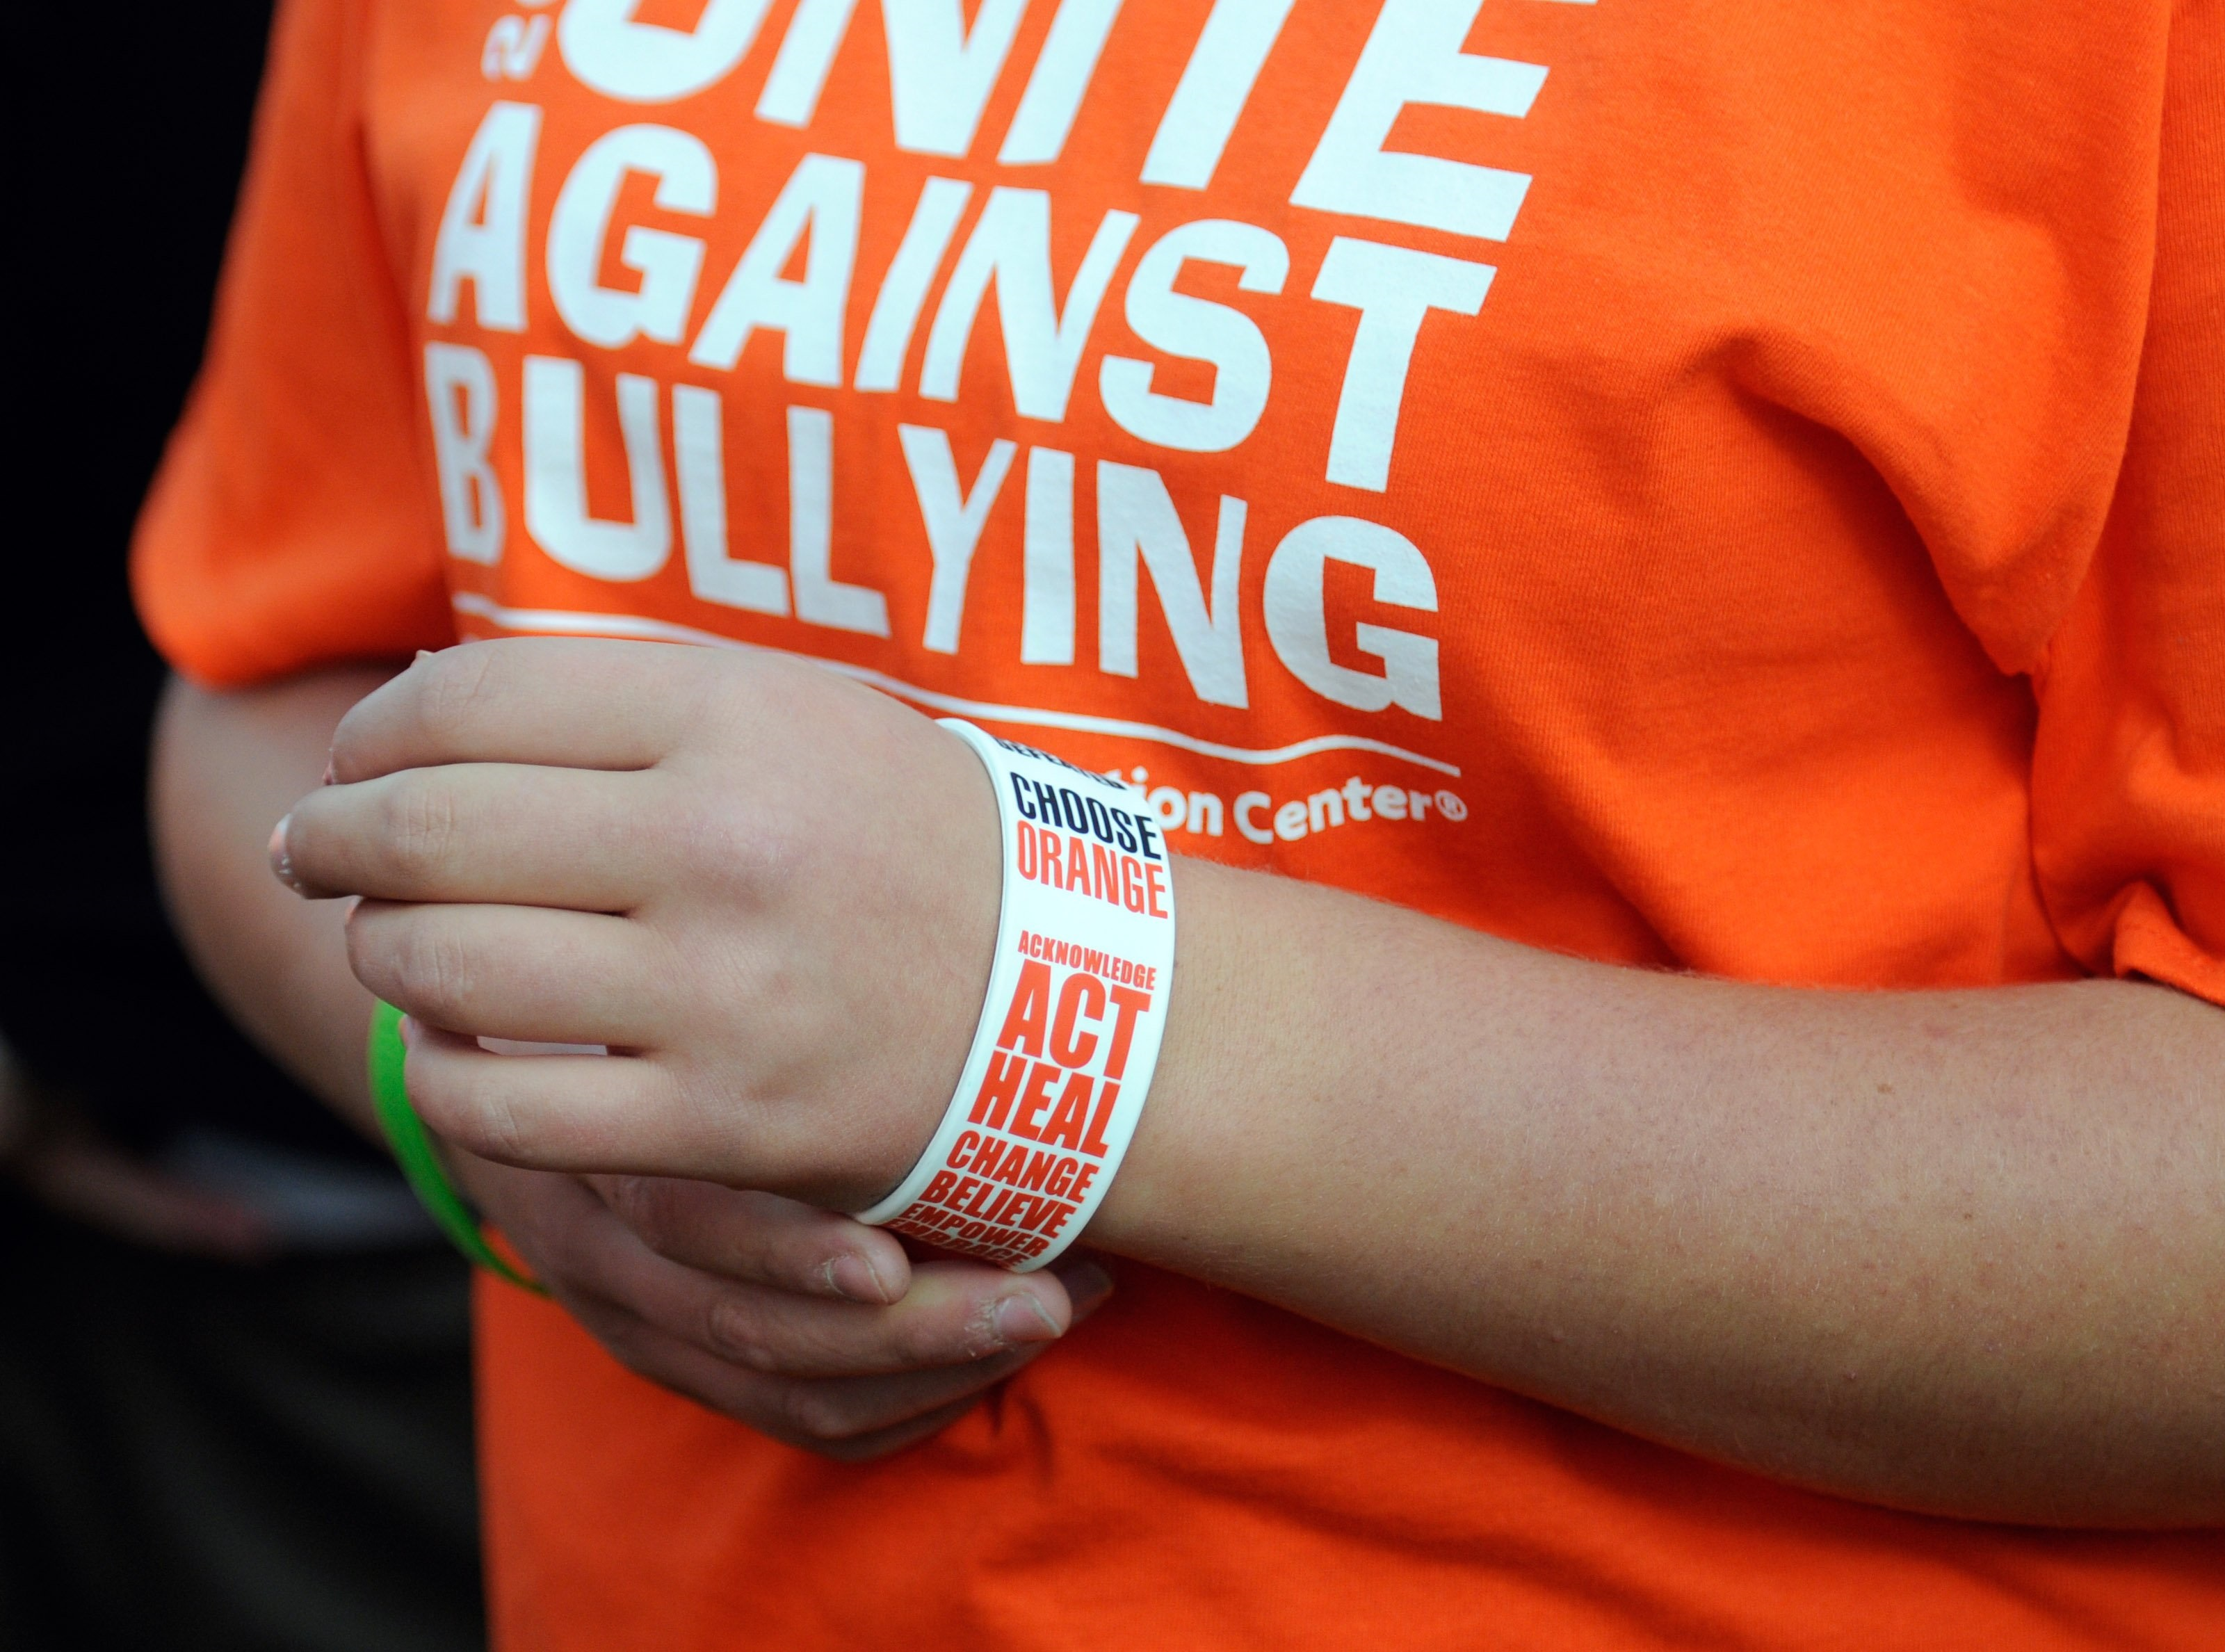 Anna Canzano: Your questions on dealing with a bully